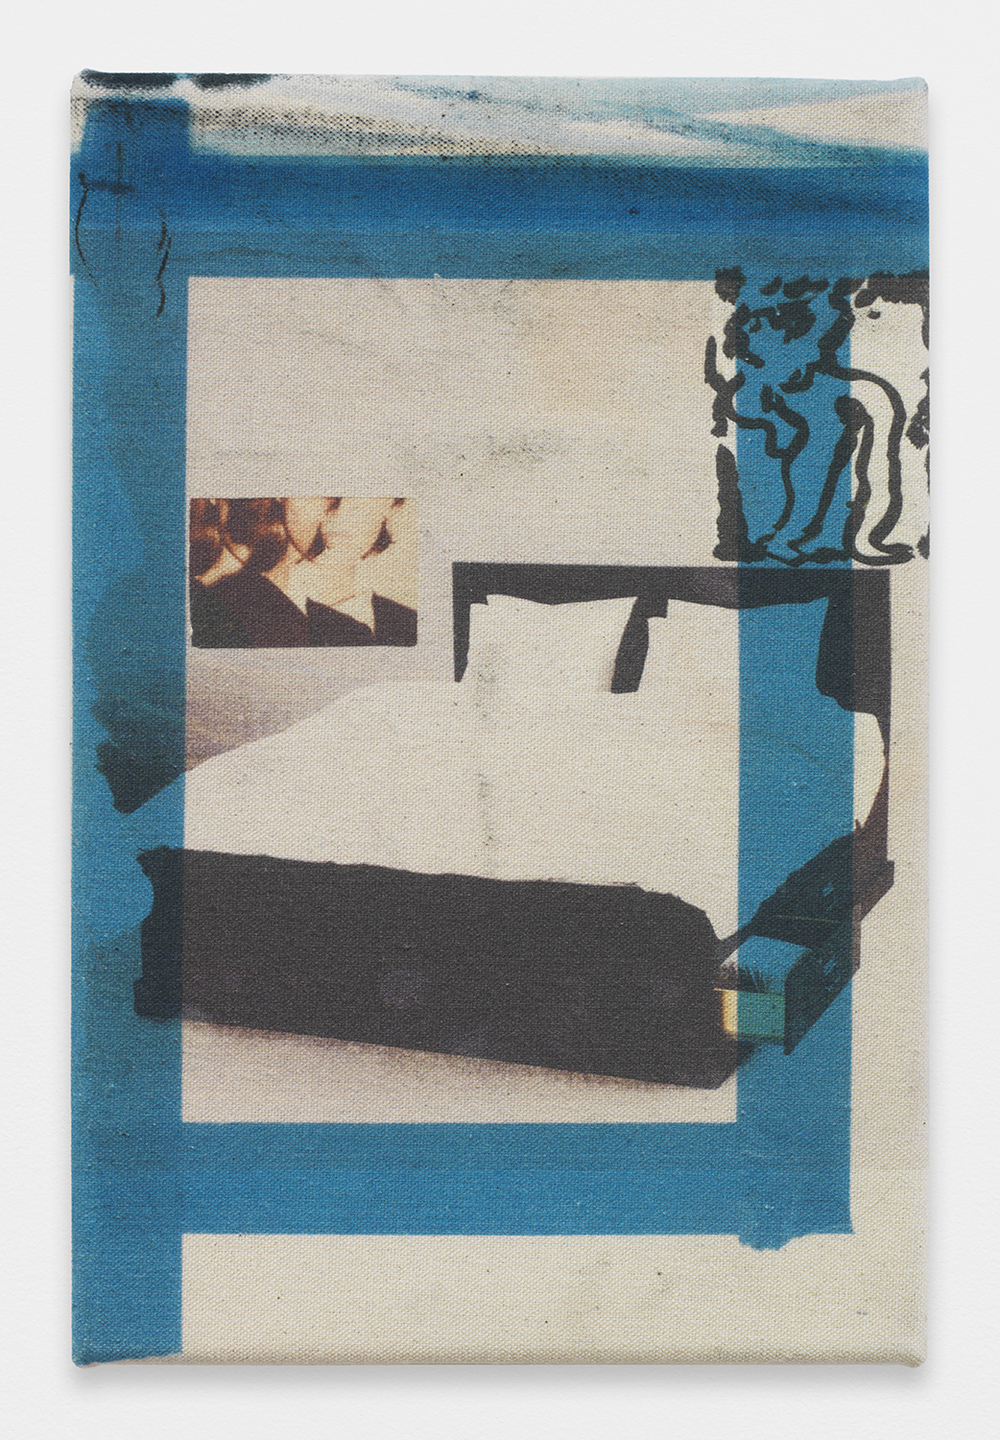 AUGUSTUS THOMPSON  Bedroom State  , 2013   Inkjet on raw canvas   12 x 8 inches